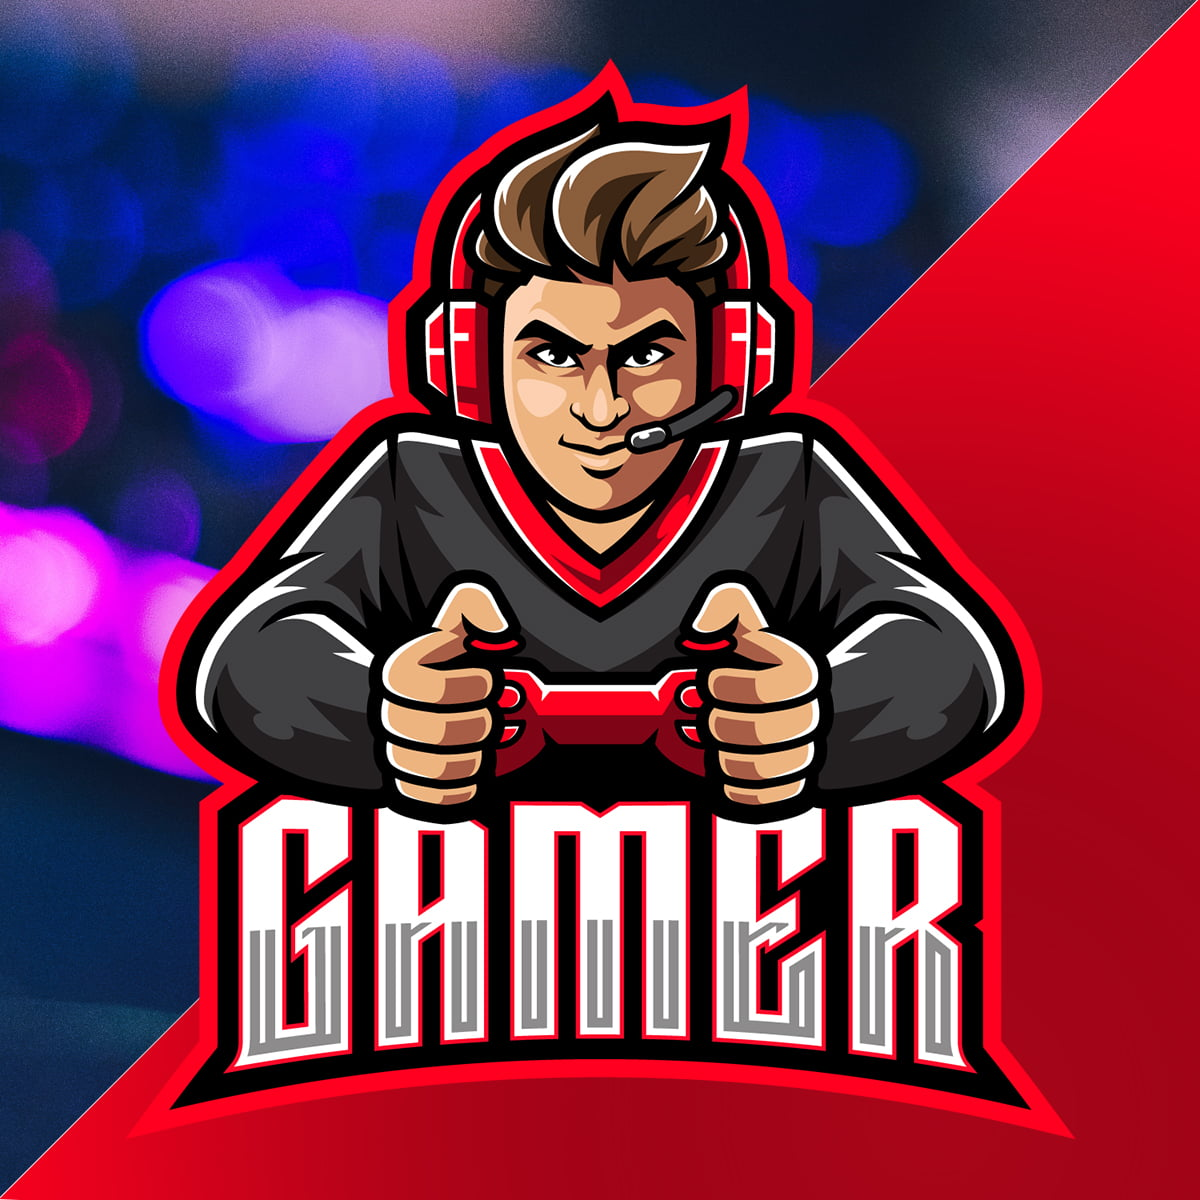 Download-Free-Gaming-Logo-Mascot-GraphicsFamily